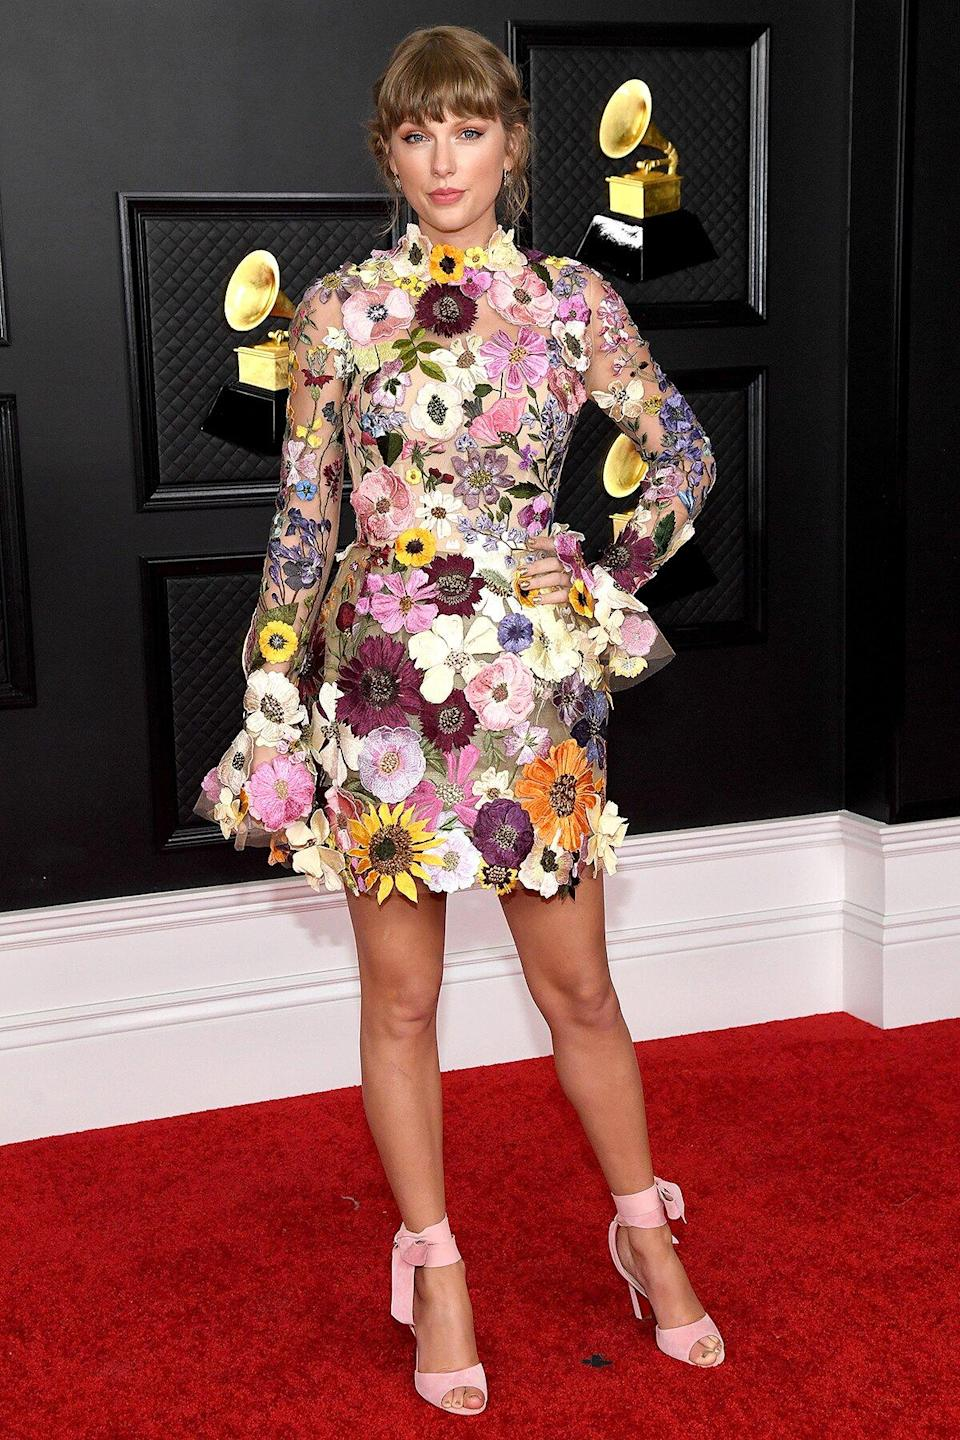 The Best-Dressed Celebrities At The Grammys Took Risks On The Red Carpet!!!